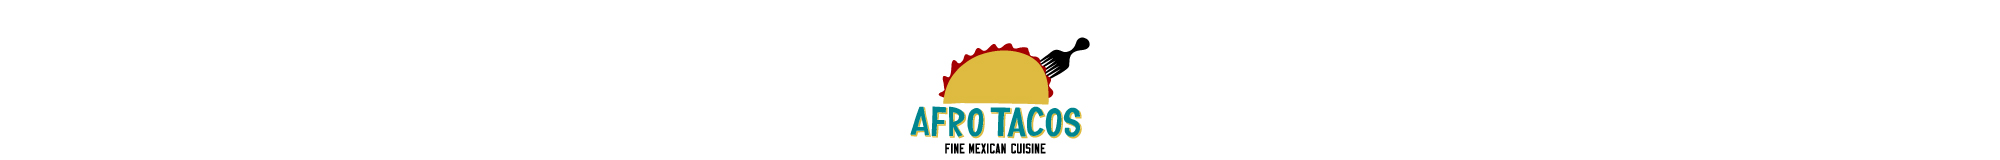 AFRO TACOS -FINE MEXICAN CUSINE-